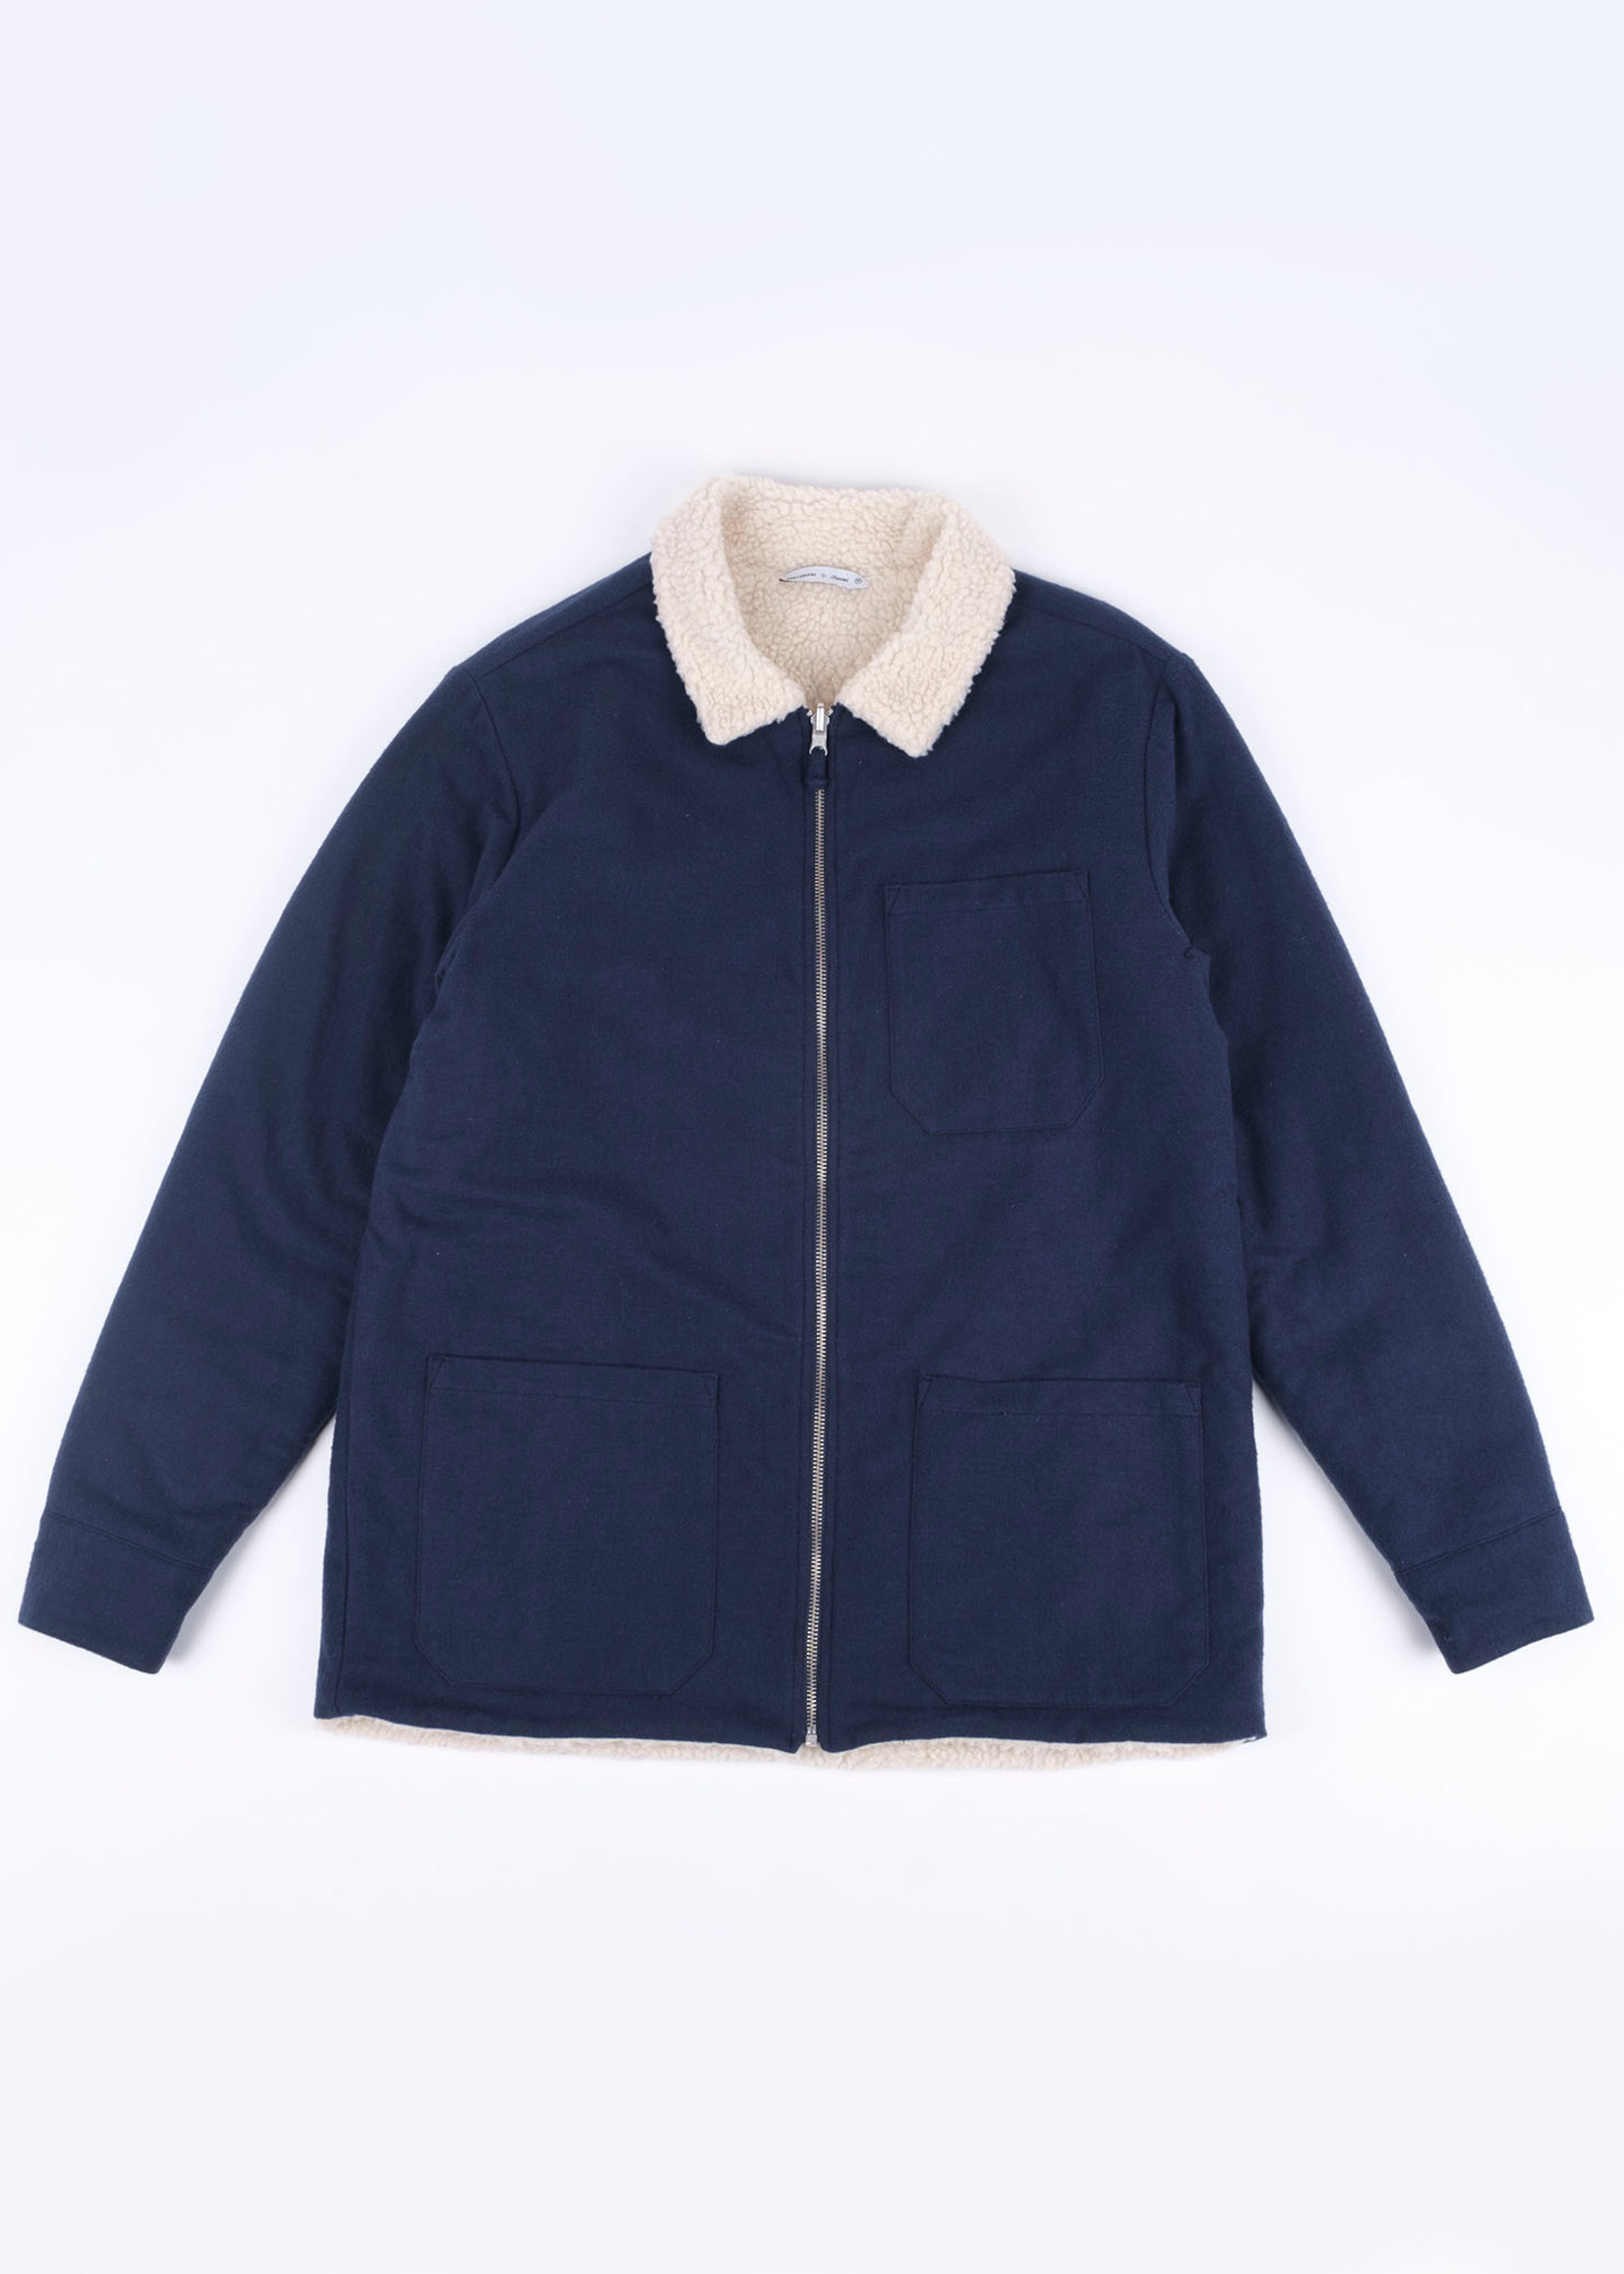 Portuguese Flannel Sherpa Jacket Navy Reversible by Portuguese Flannel